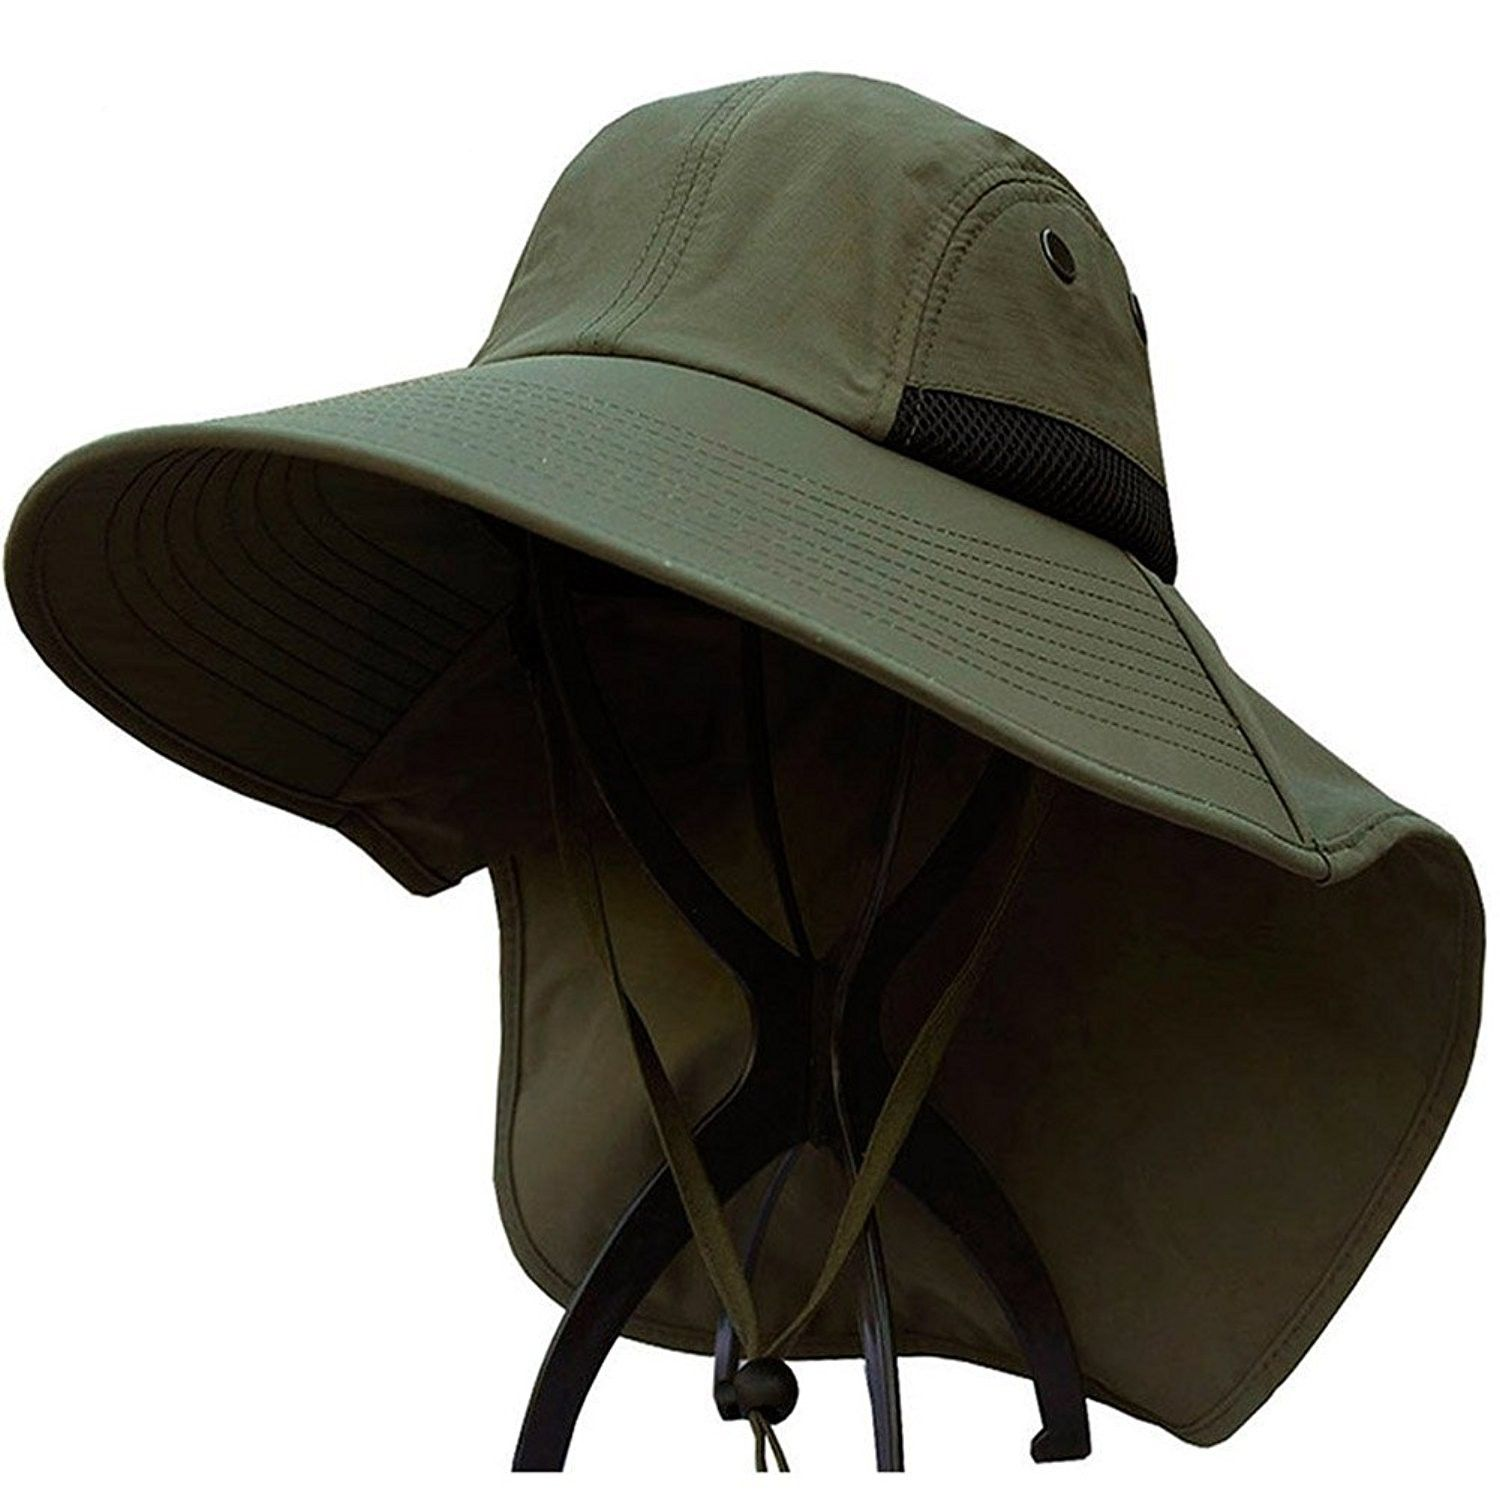 Jfs Mens Summer Outdoor Quick Dry Uv Protection Sun Hat Fishing Hat Army Green Cl12hil1hbl Hats For Men Mens Sun Hats Sun Hats